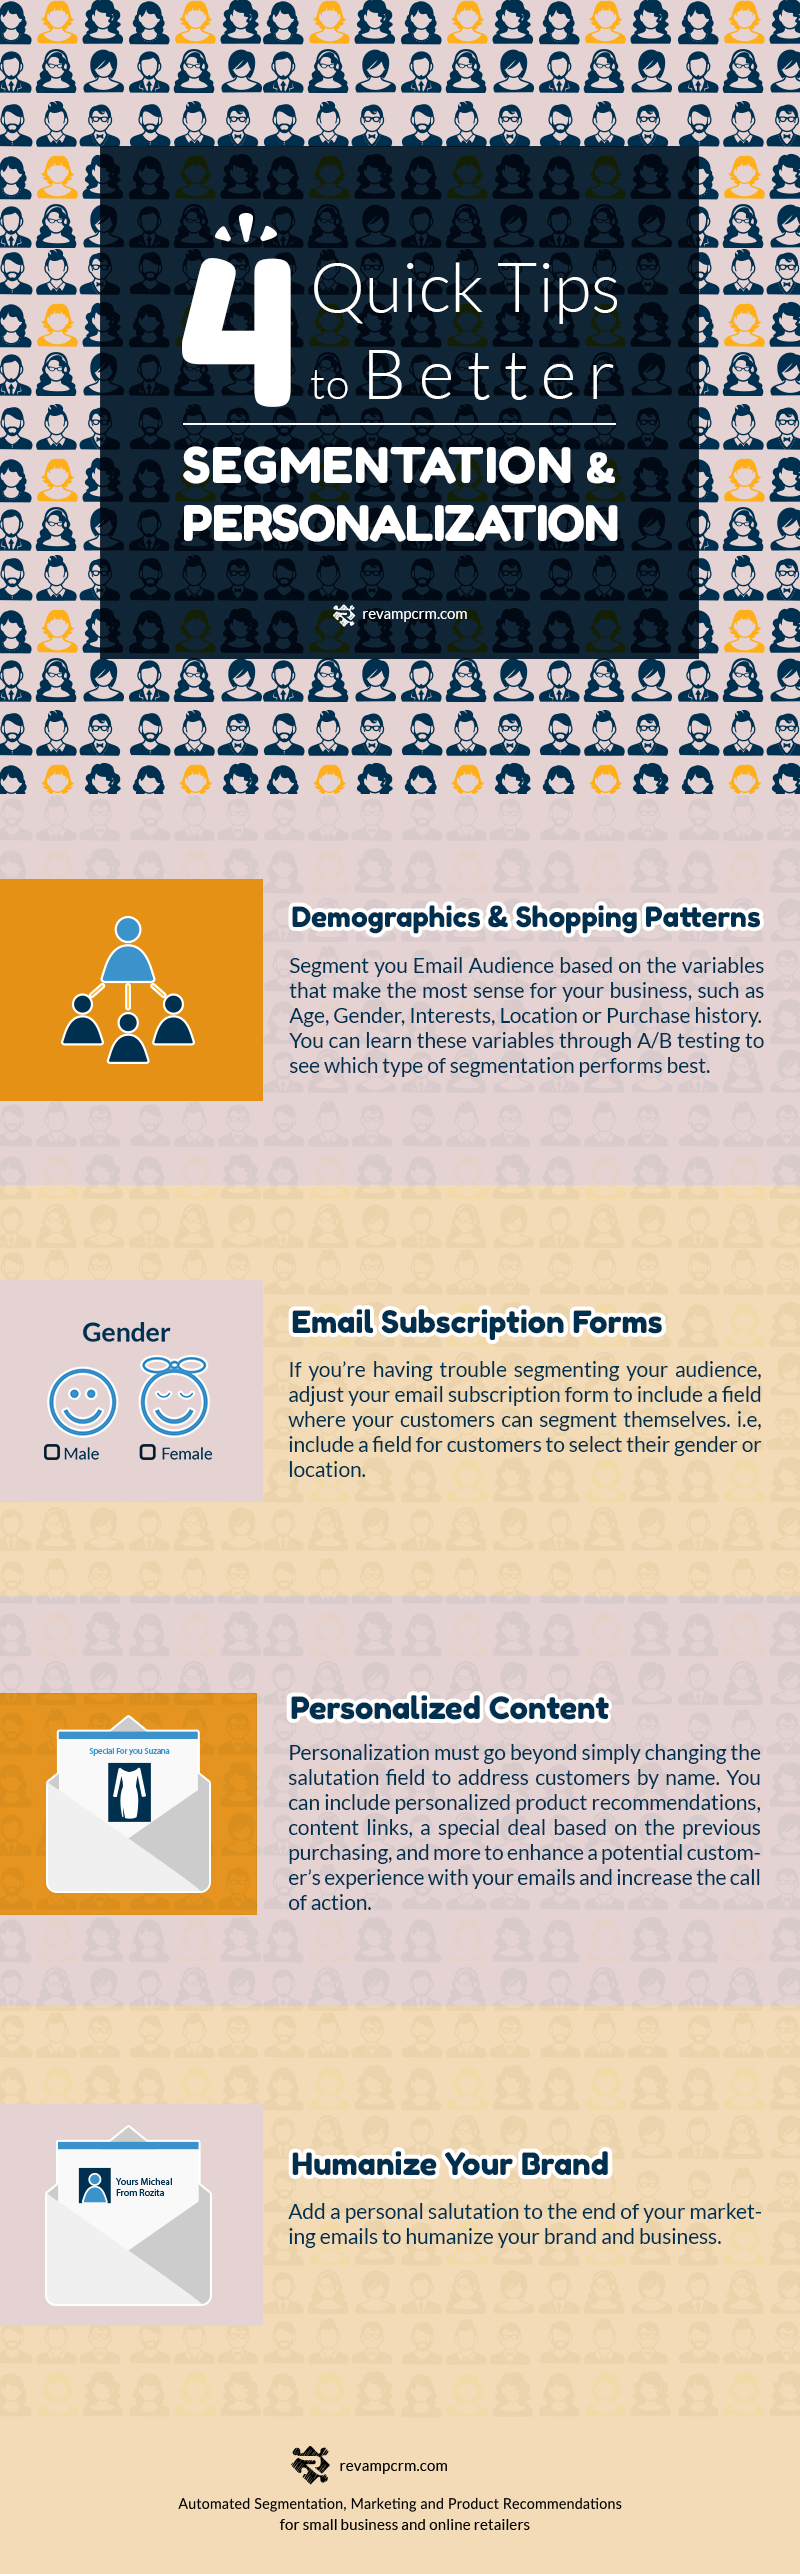 4 Quick Tips To Better Segmentation & Personalization #Infographic